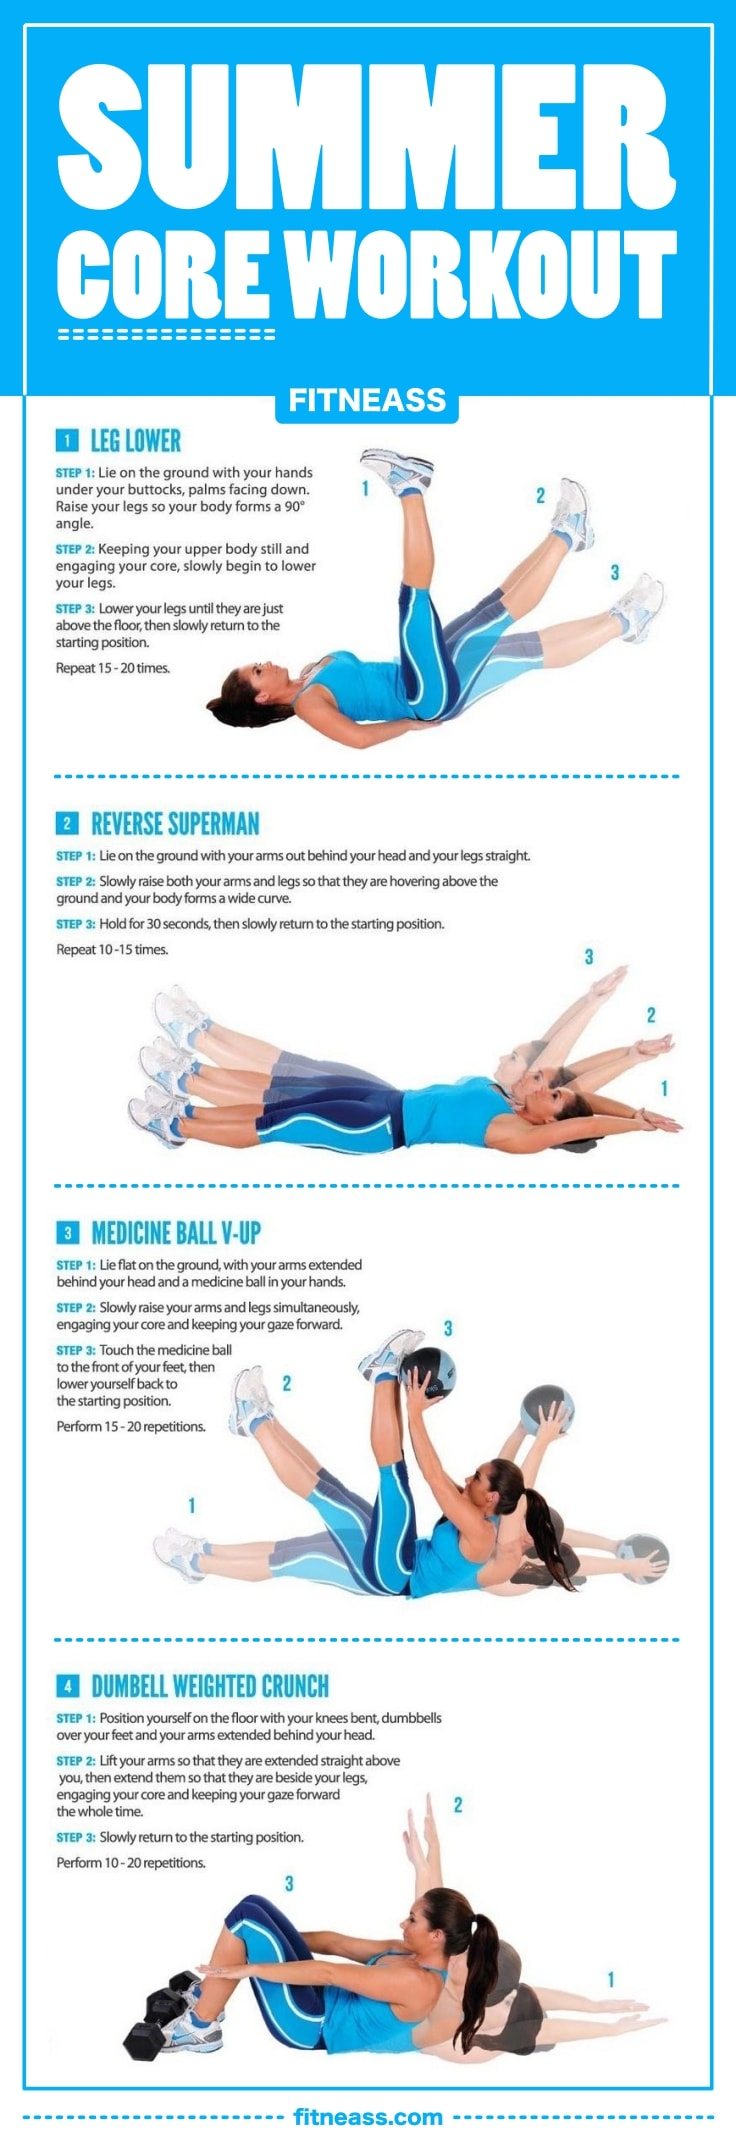 Summer Core Workout